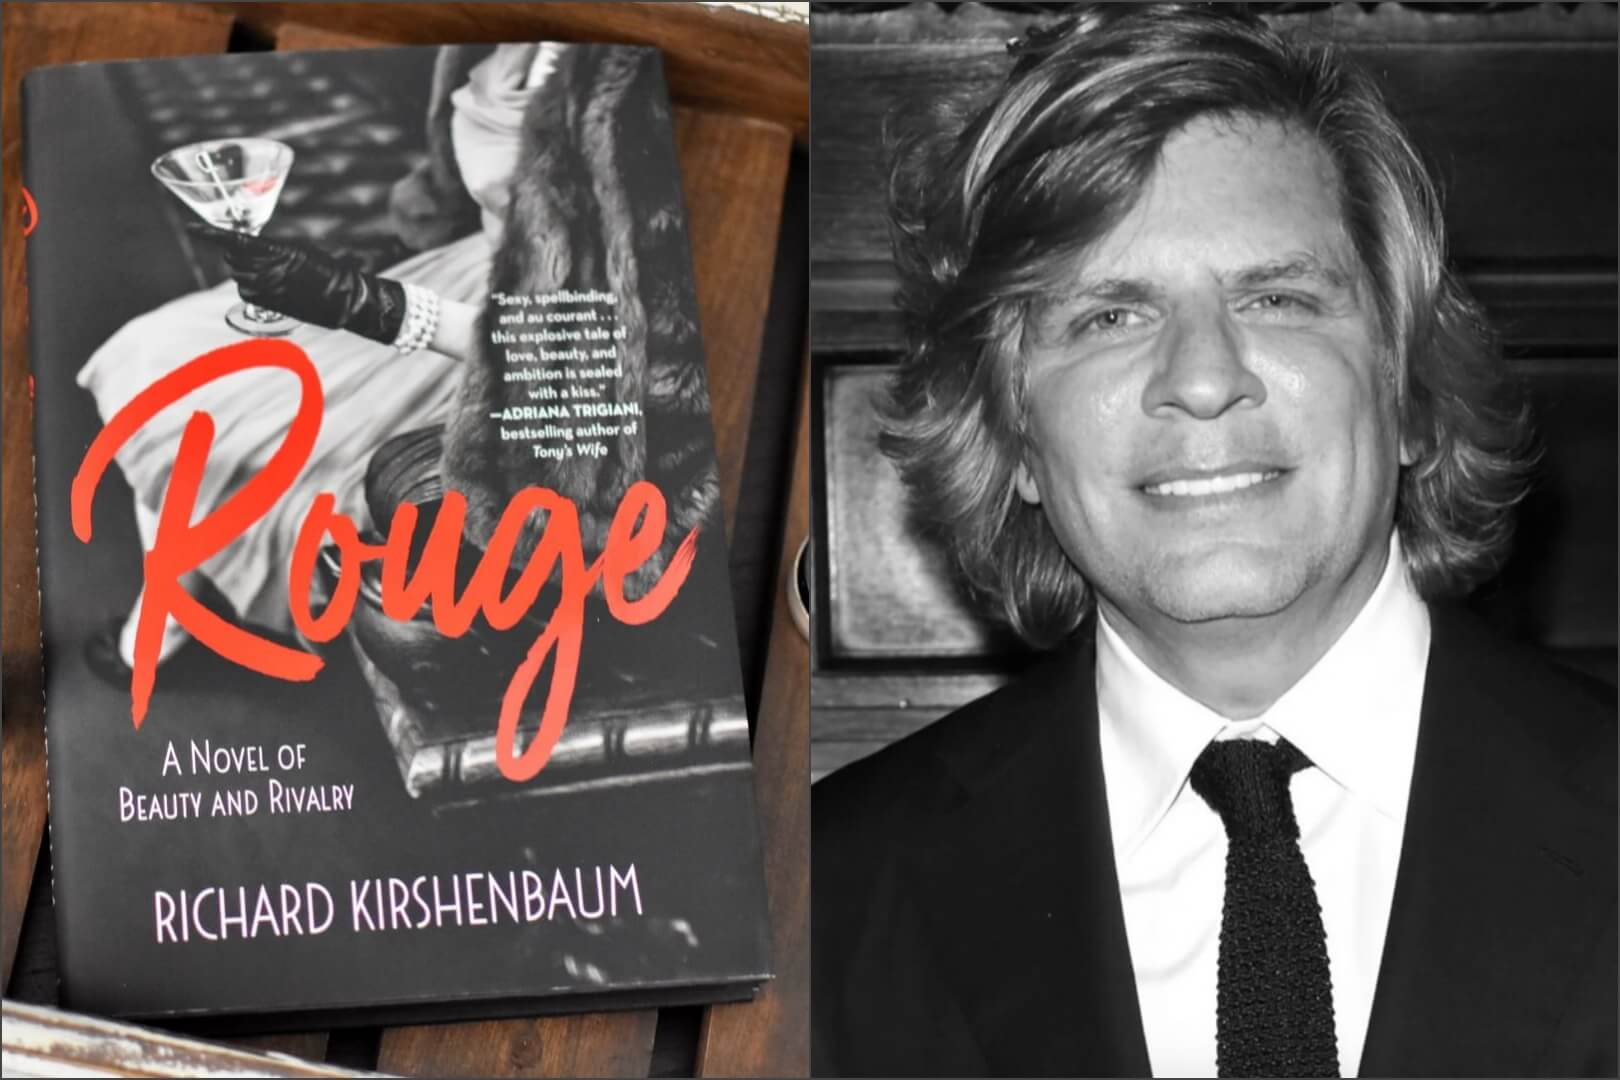 Rouge Author Richard Kirshenbaum Interview - Book Club Chat